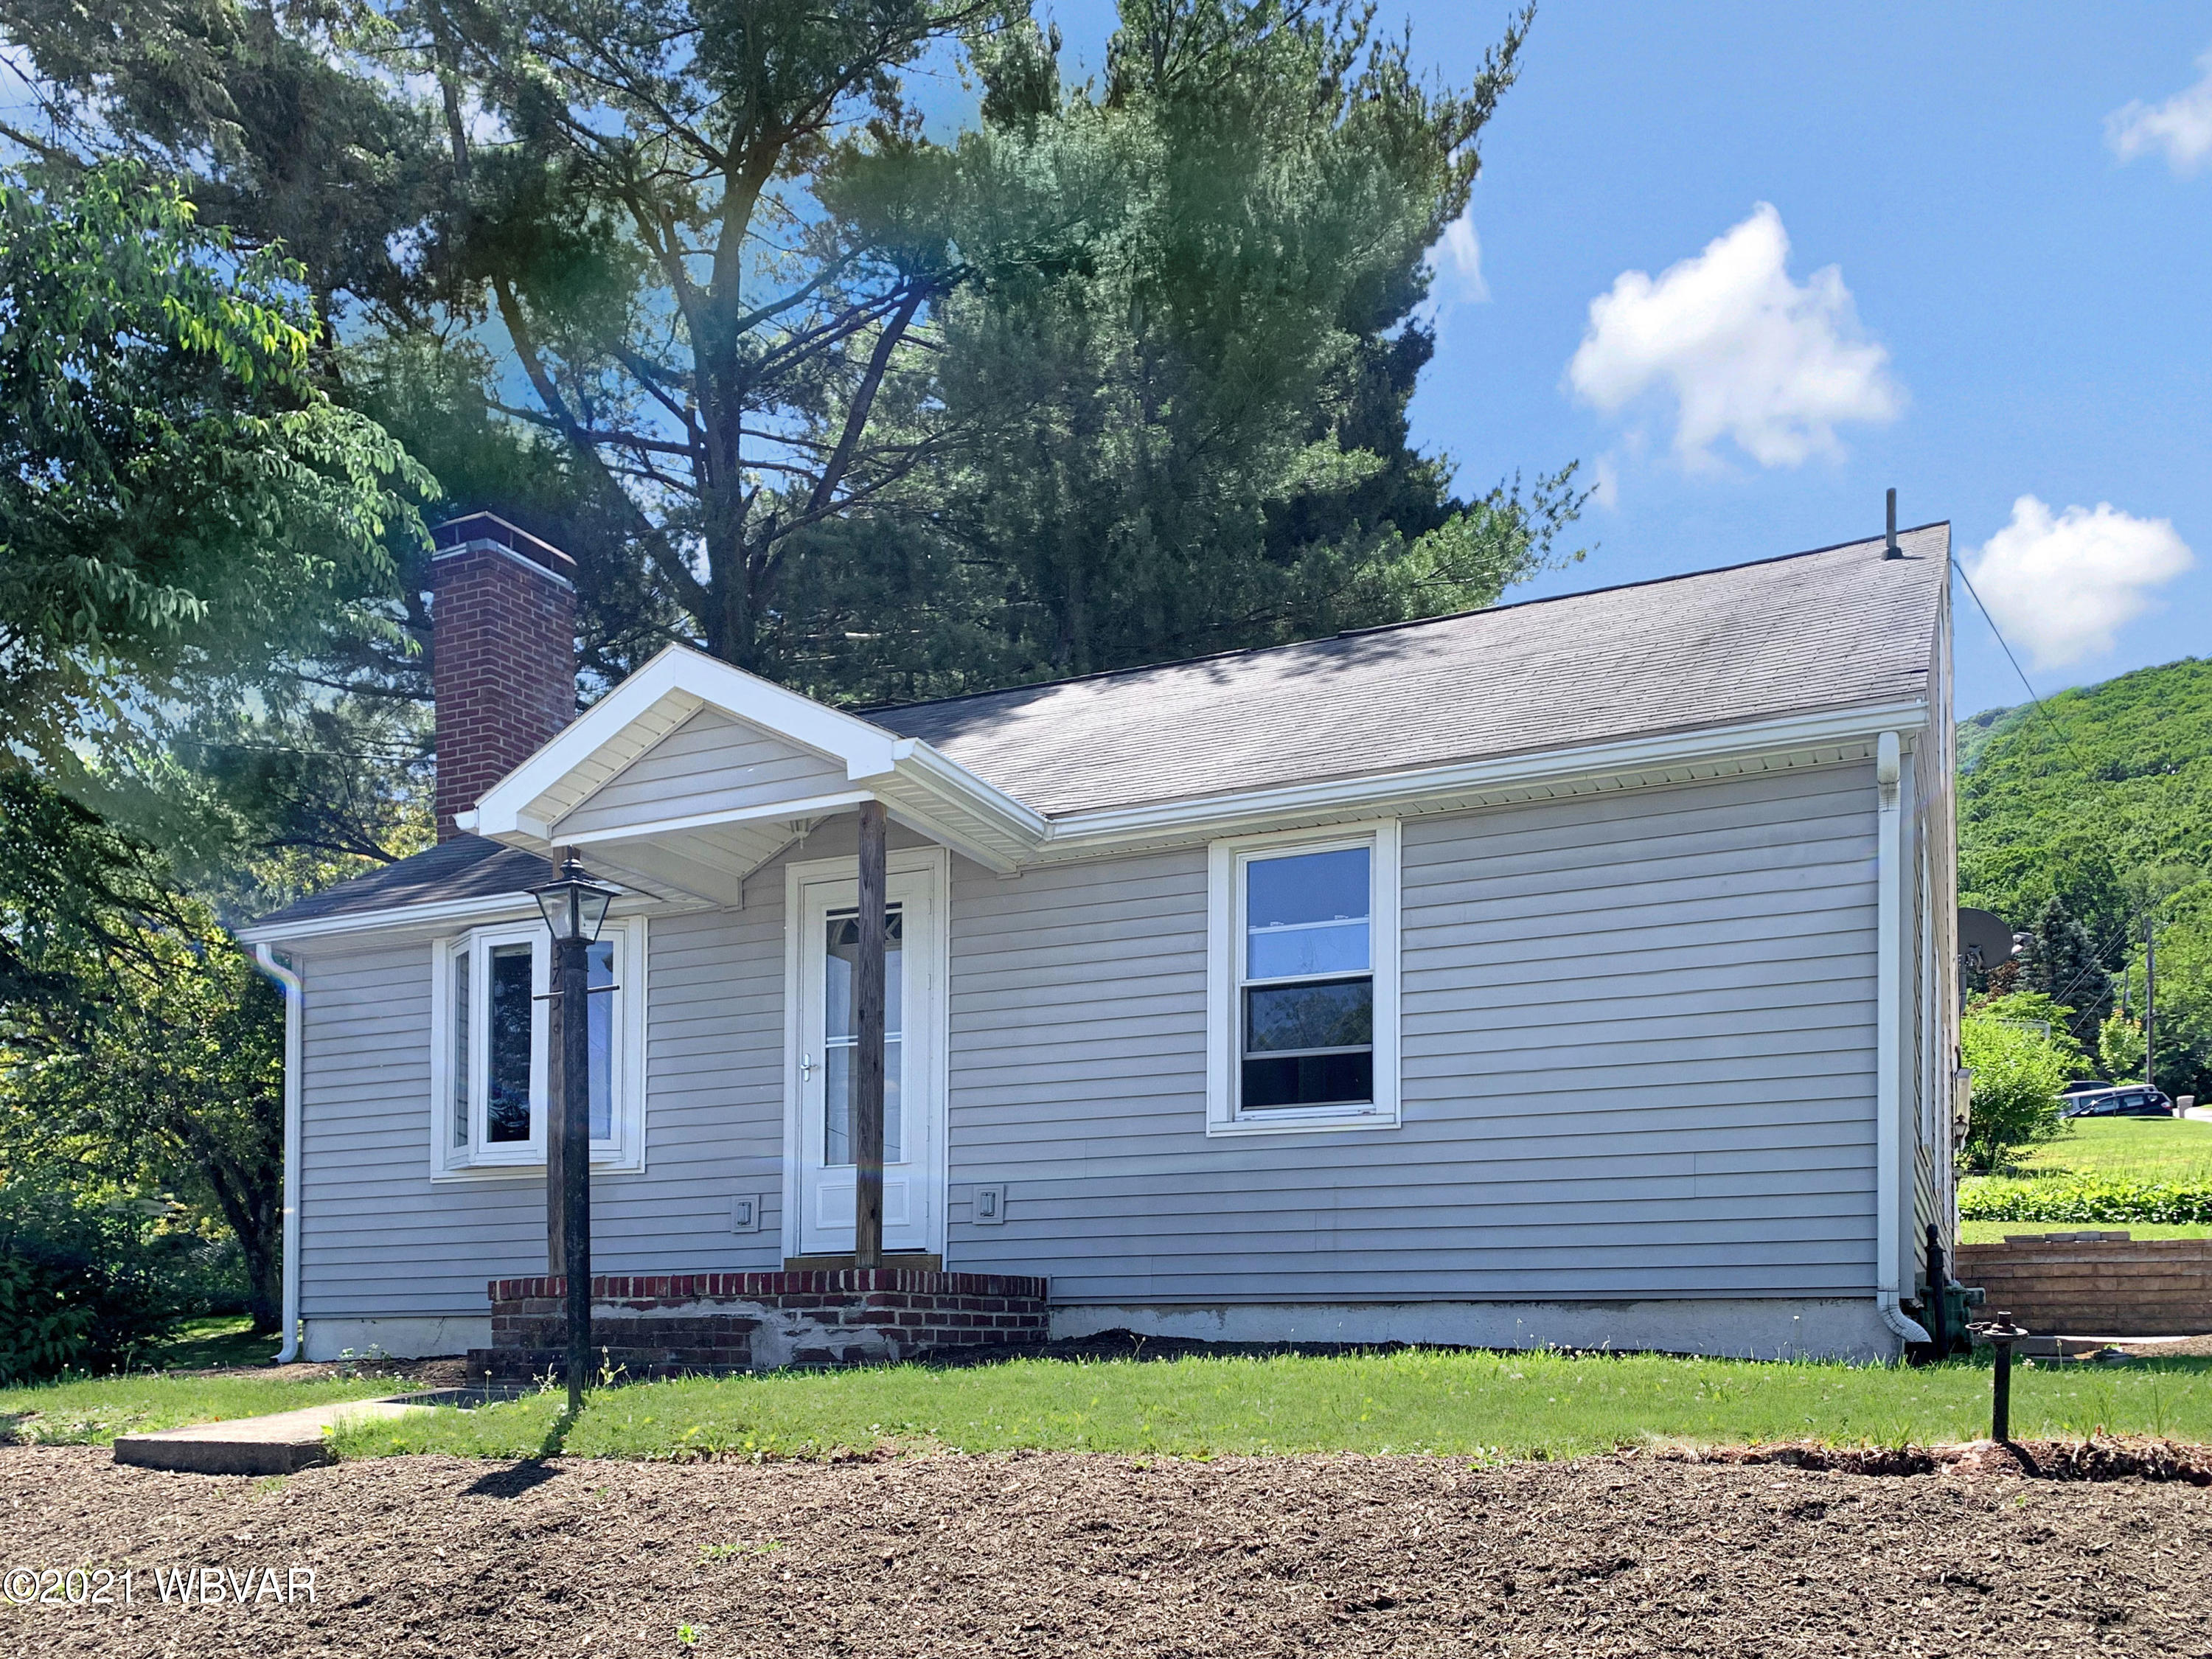 1375 MOUNTAIN AVENUE, S. Williamsport, PA 17702, 2 Bedrooms Bedrooms, ,1 BathroomBathrooms,Residential,For sale,MOUNTAIN,WB-92809